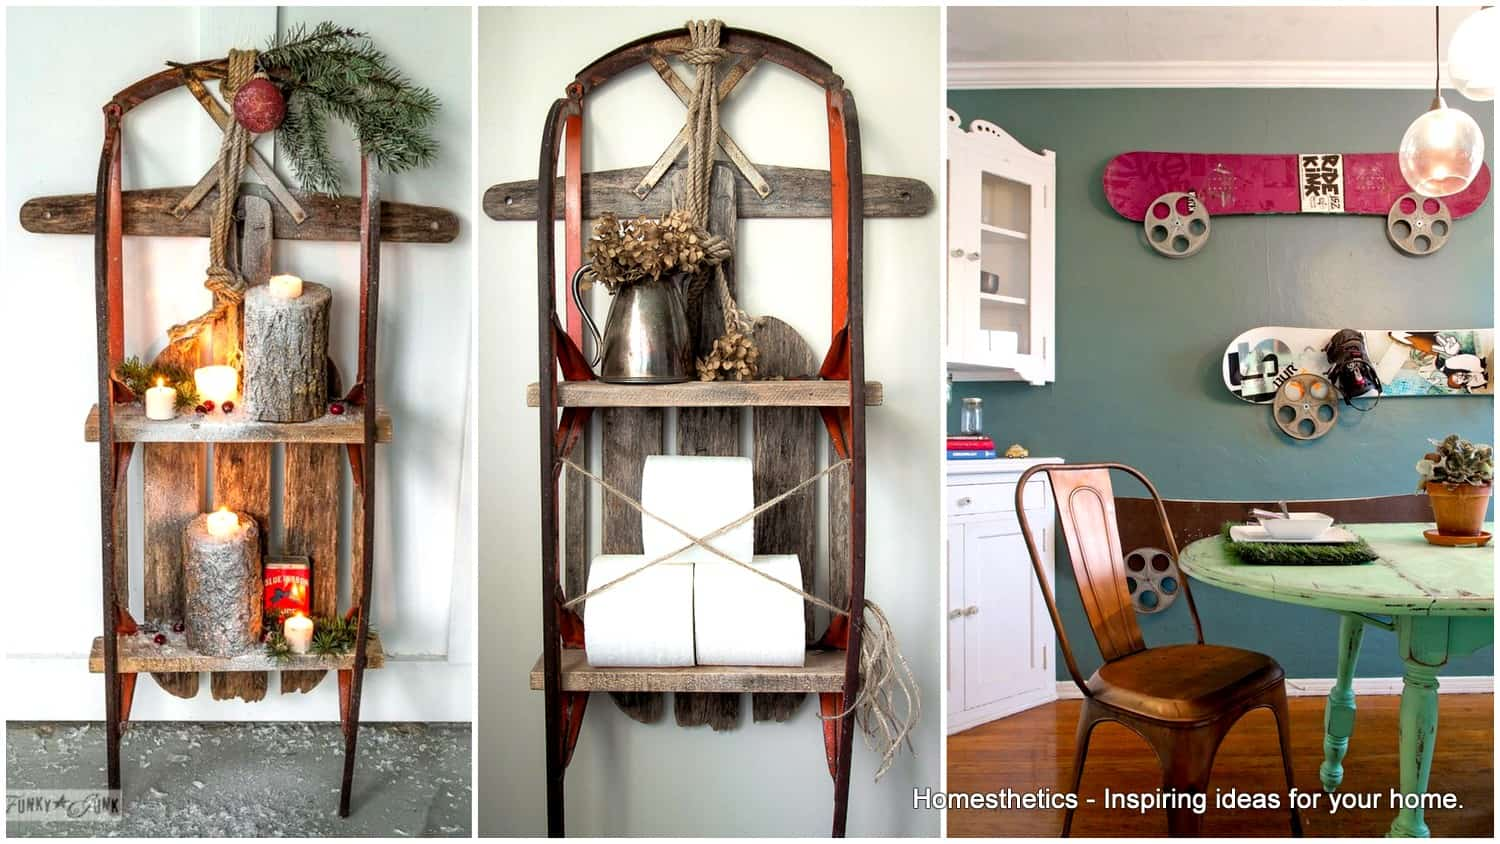 19 Winter Home Decorations Re Purposing Sleighs Skis Snowboards